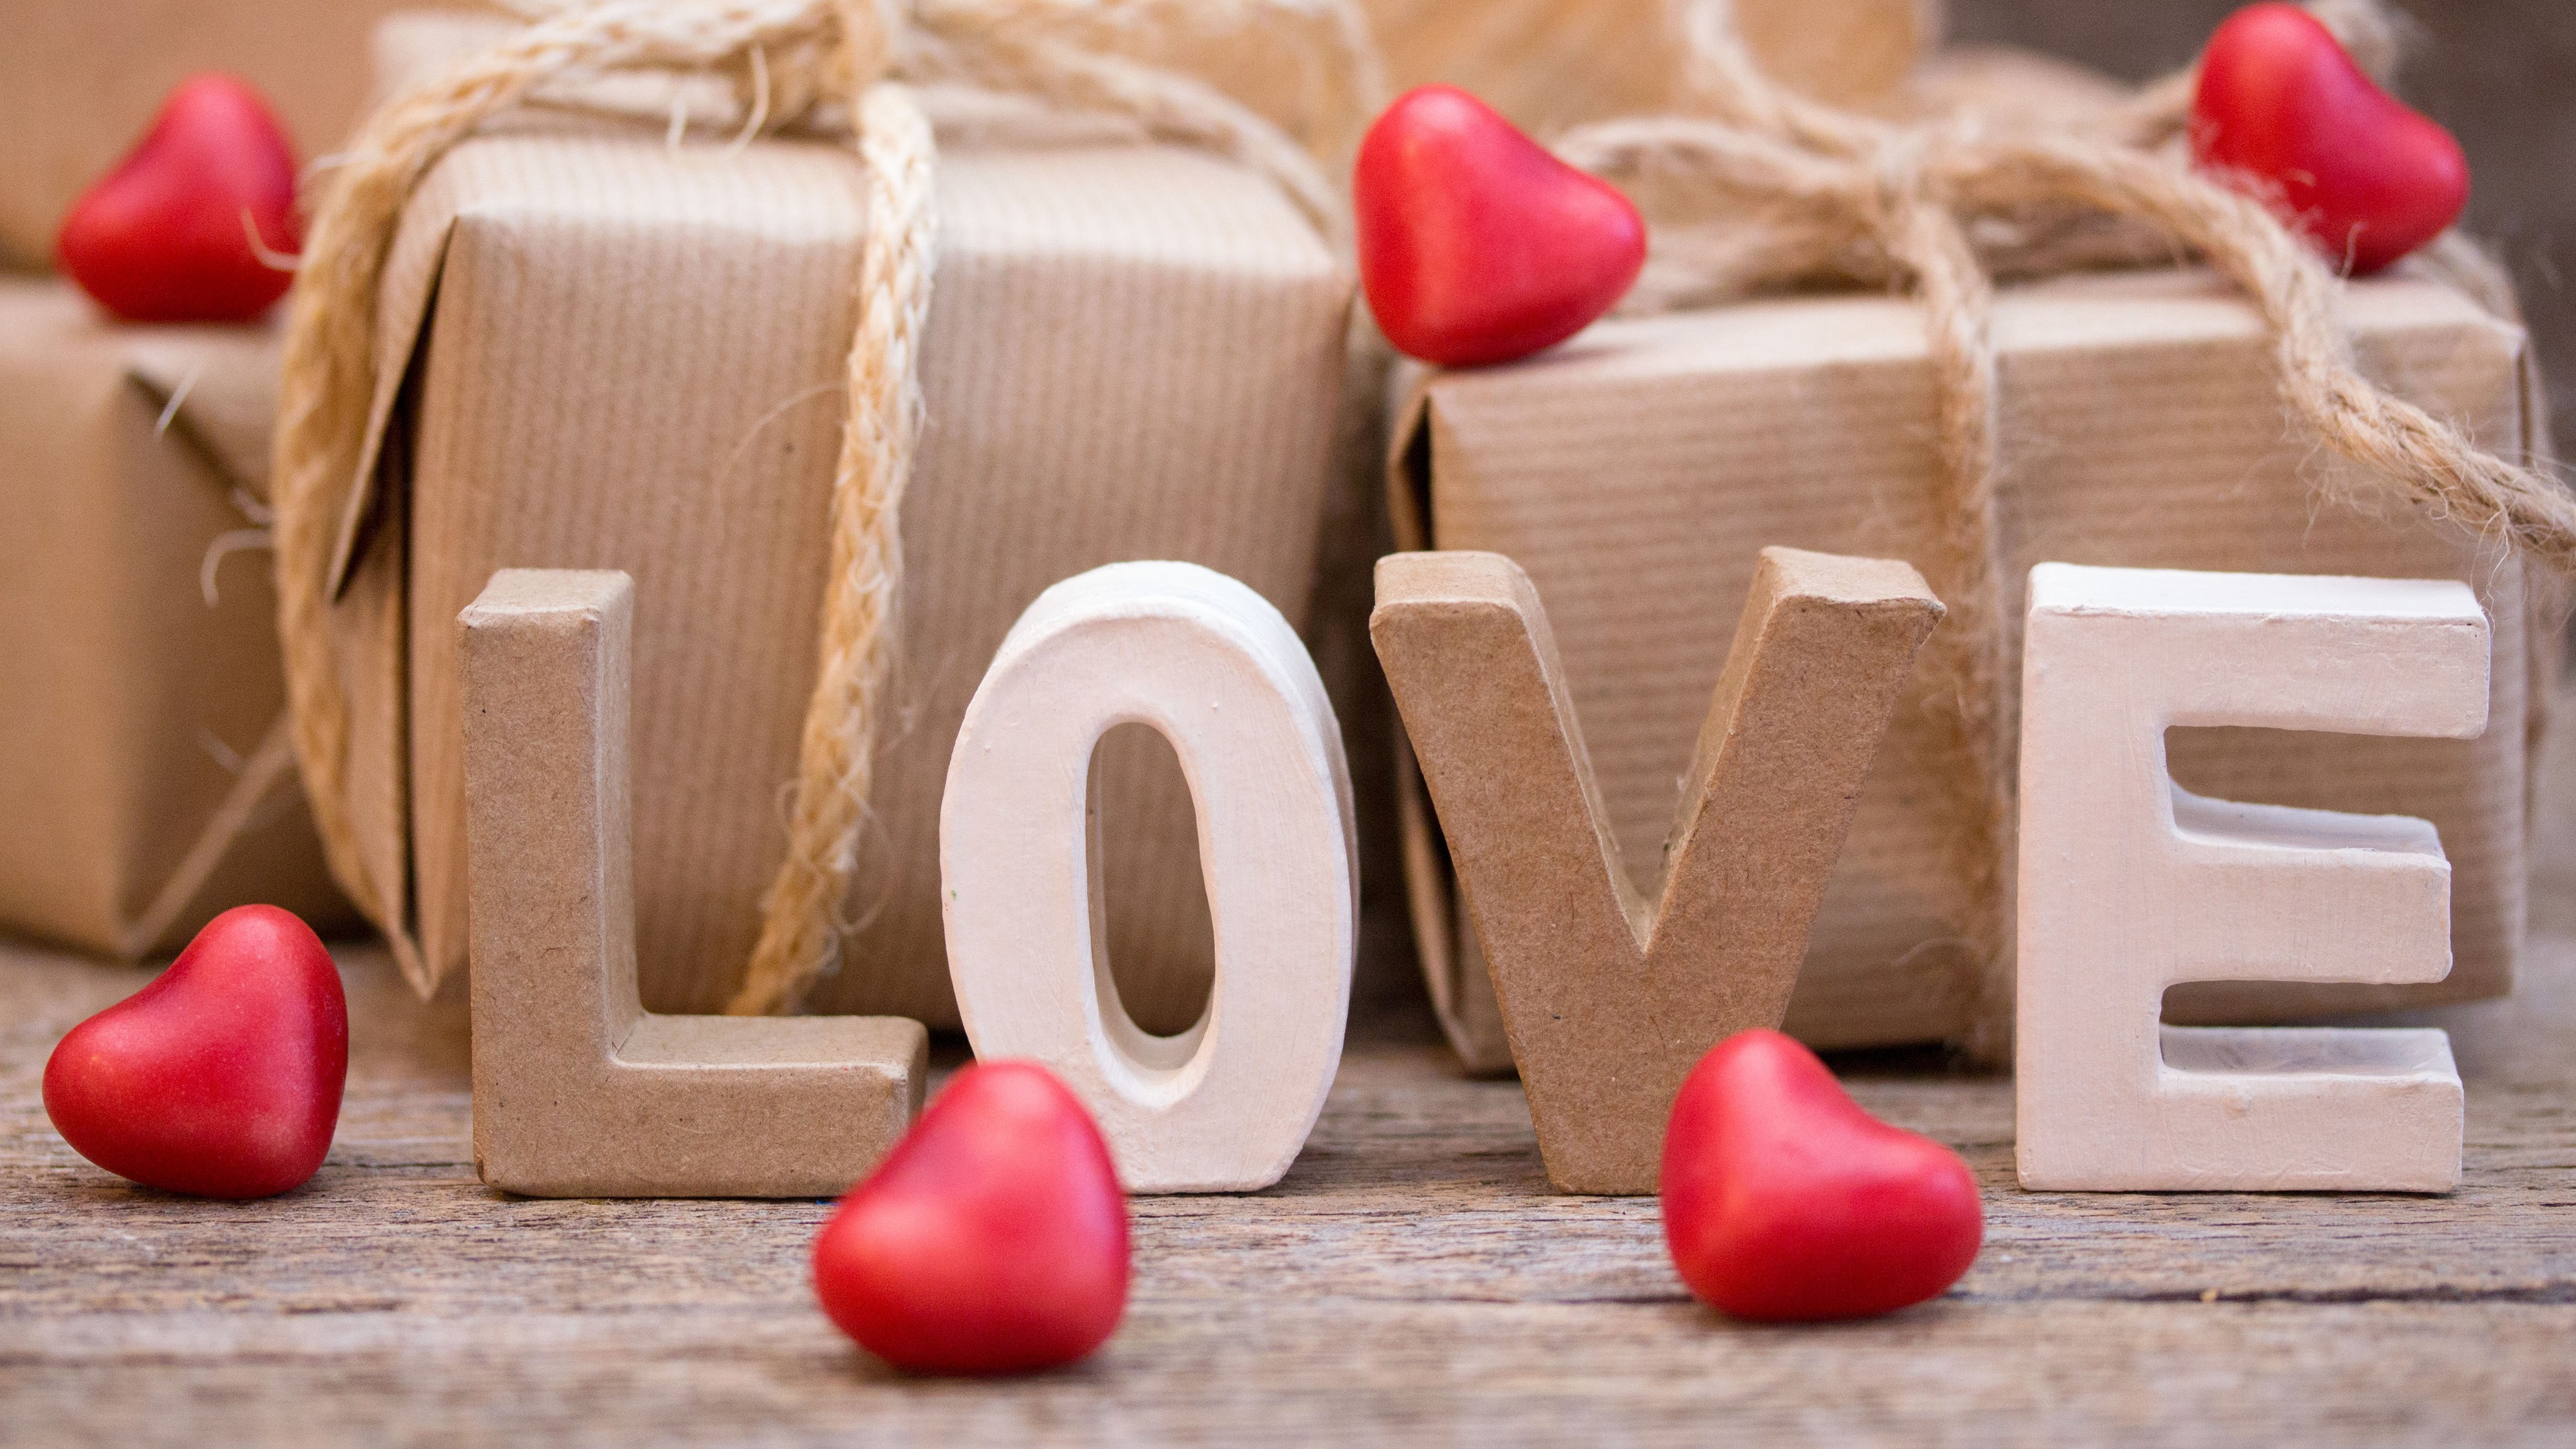 Wallpaper Love Gift Decoration 3840x2160 Uhd 4k Picture Image